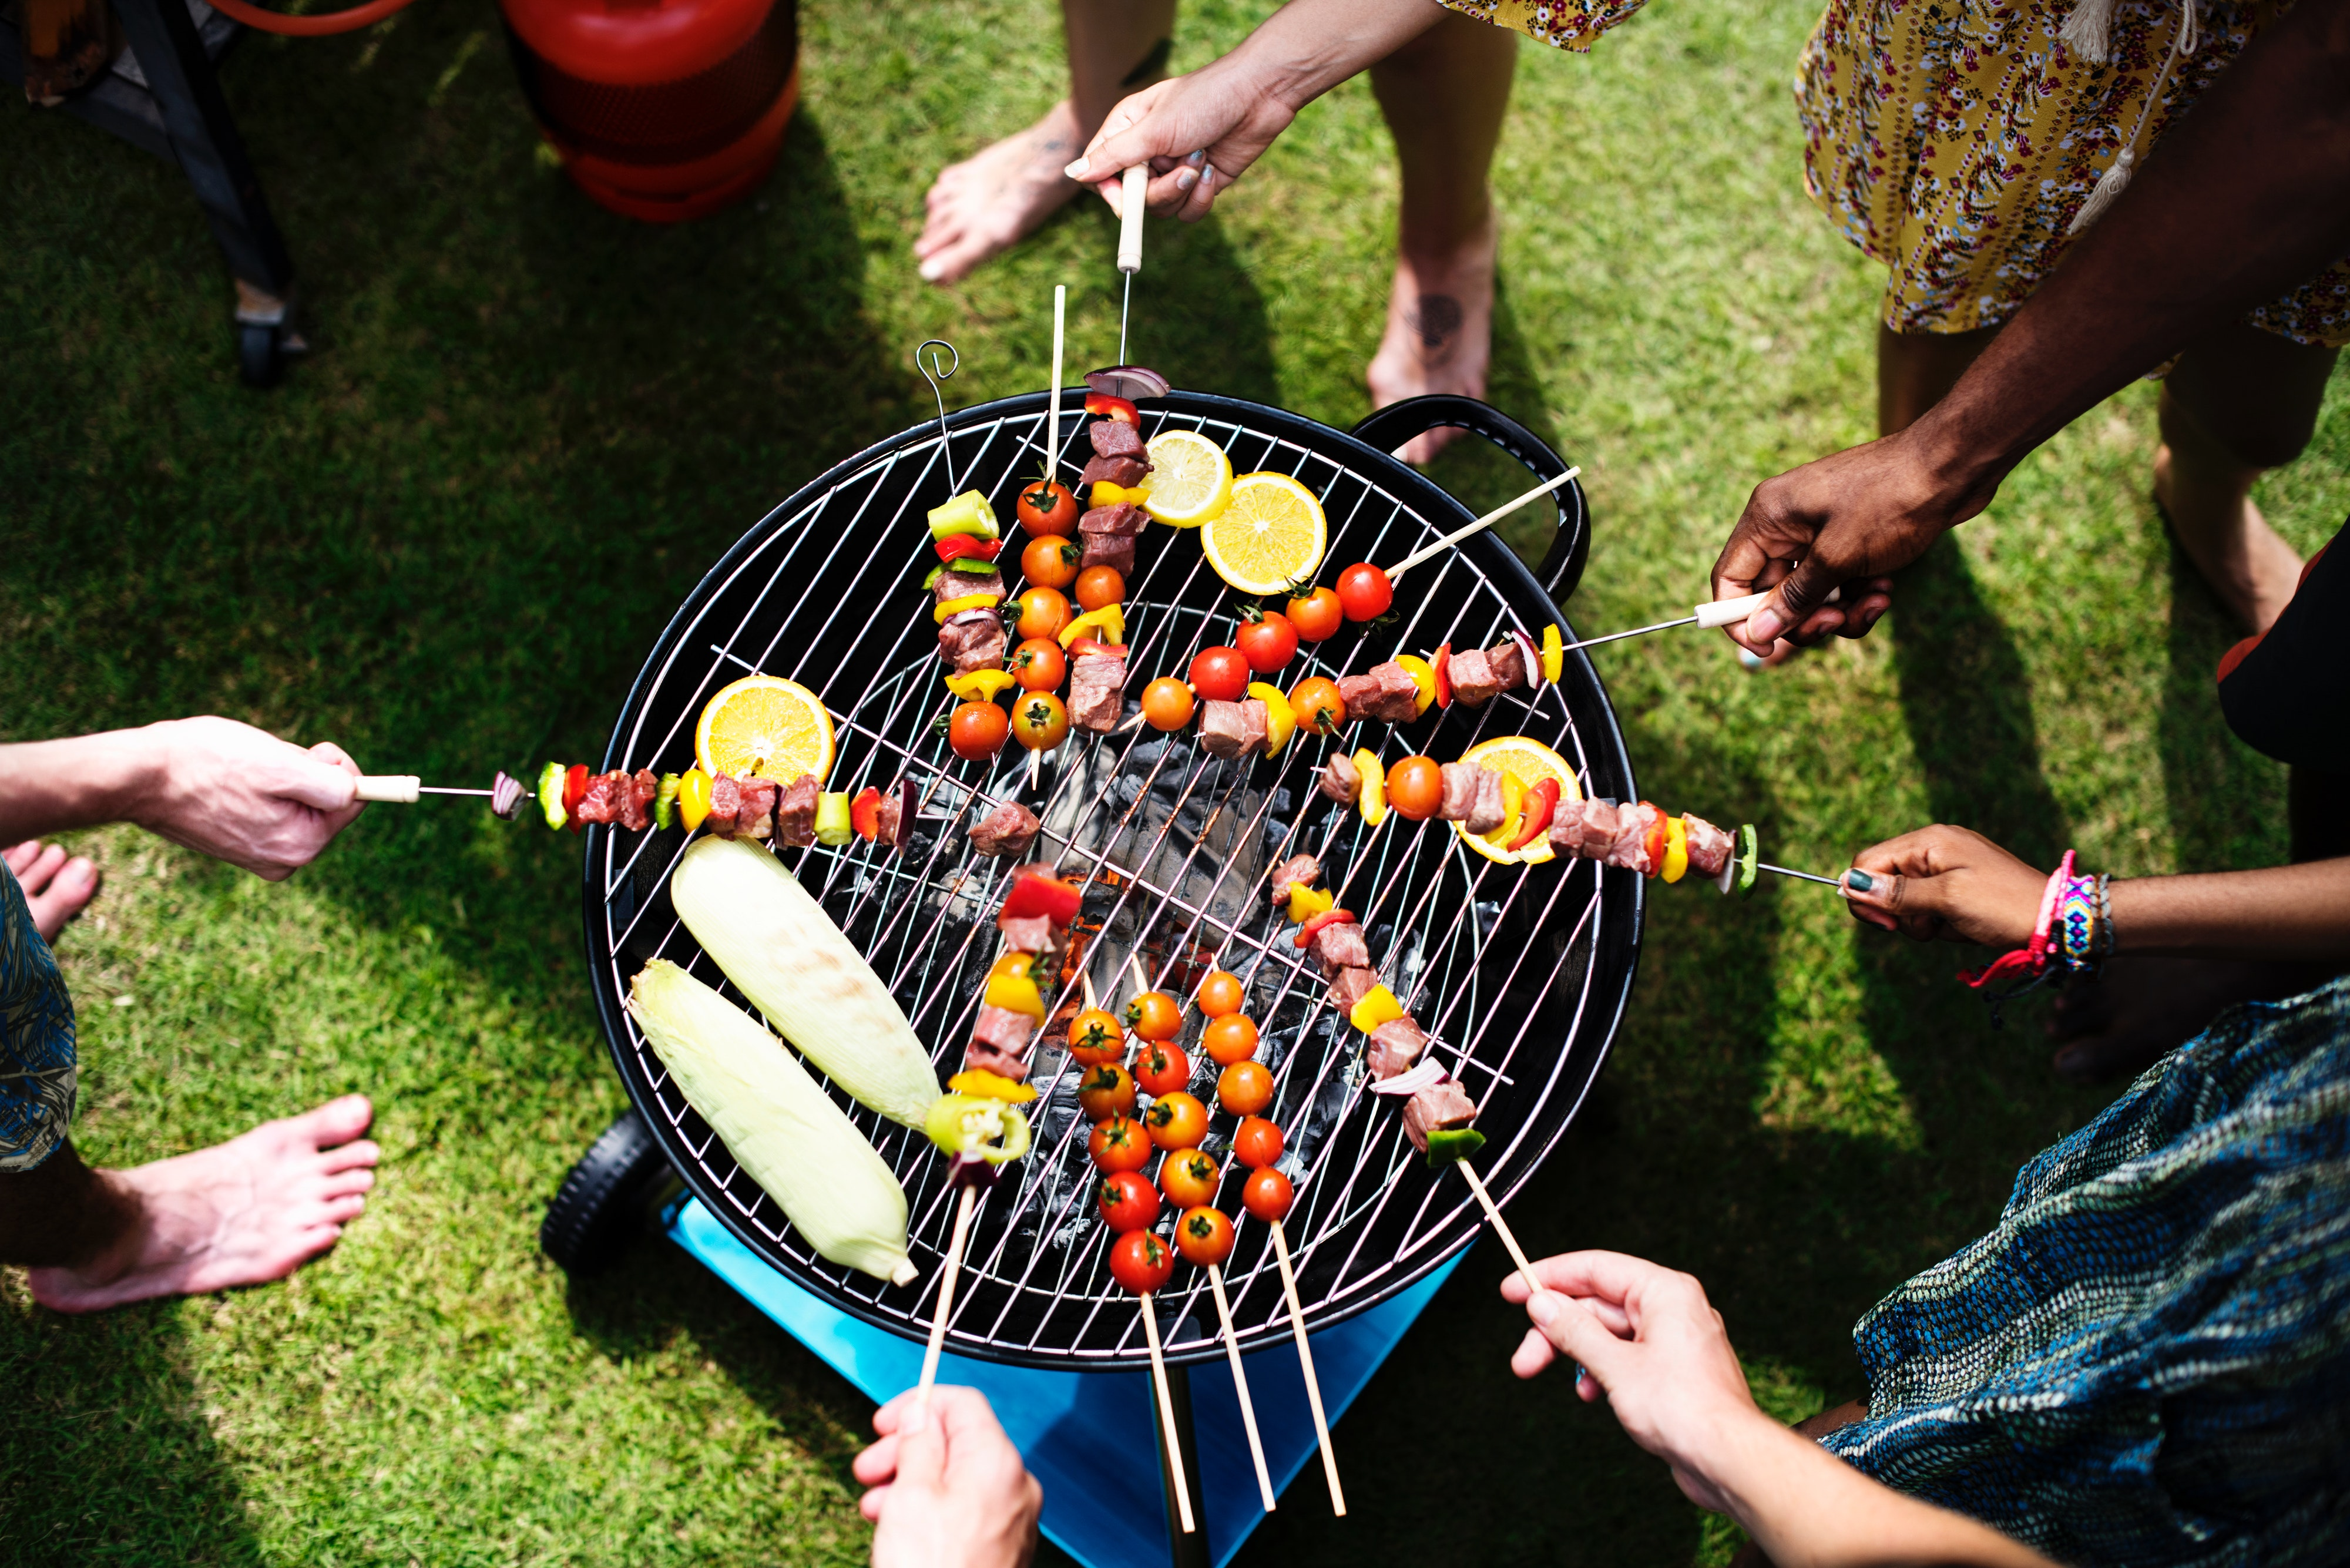 4 Ideas for Your Kids During a BBQ